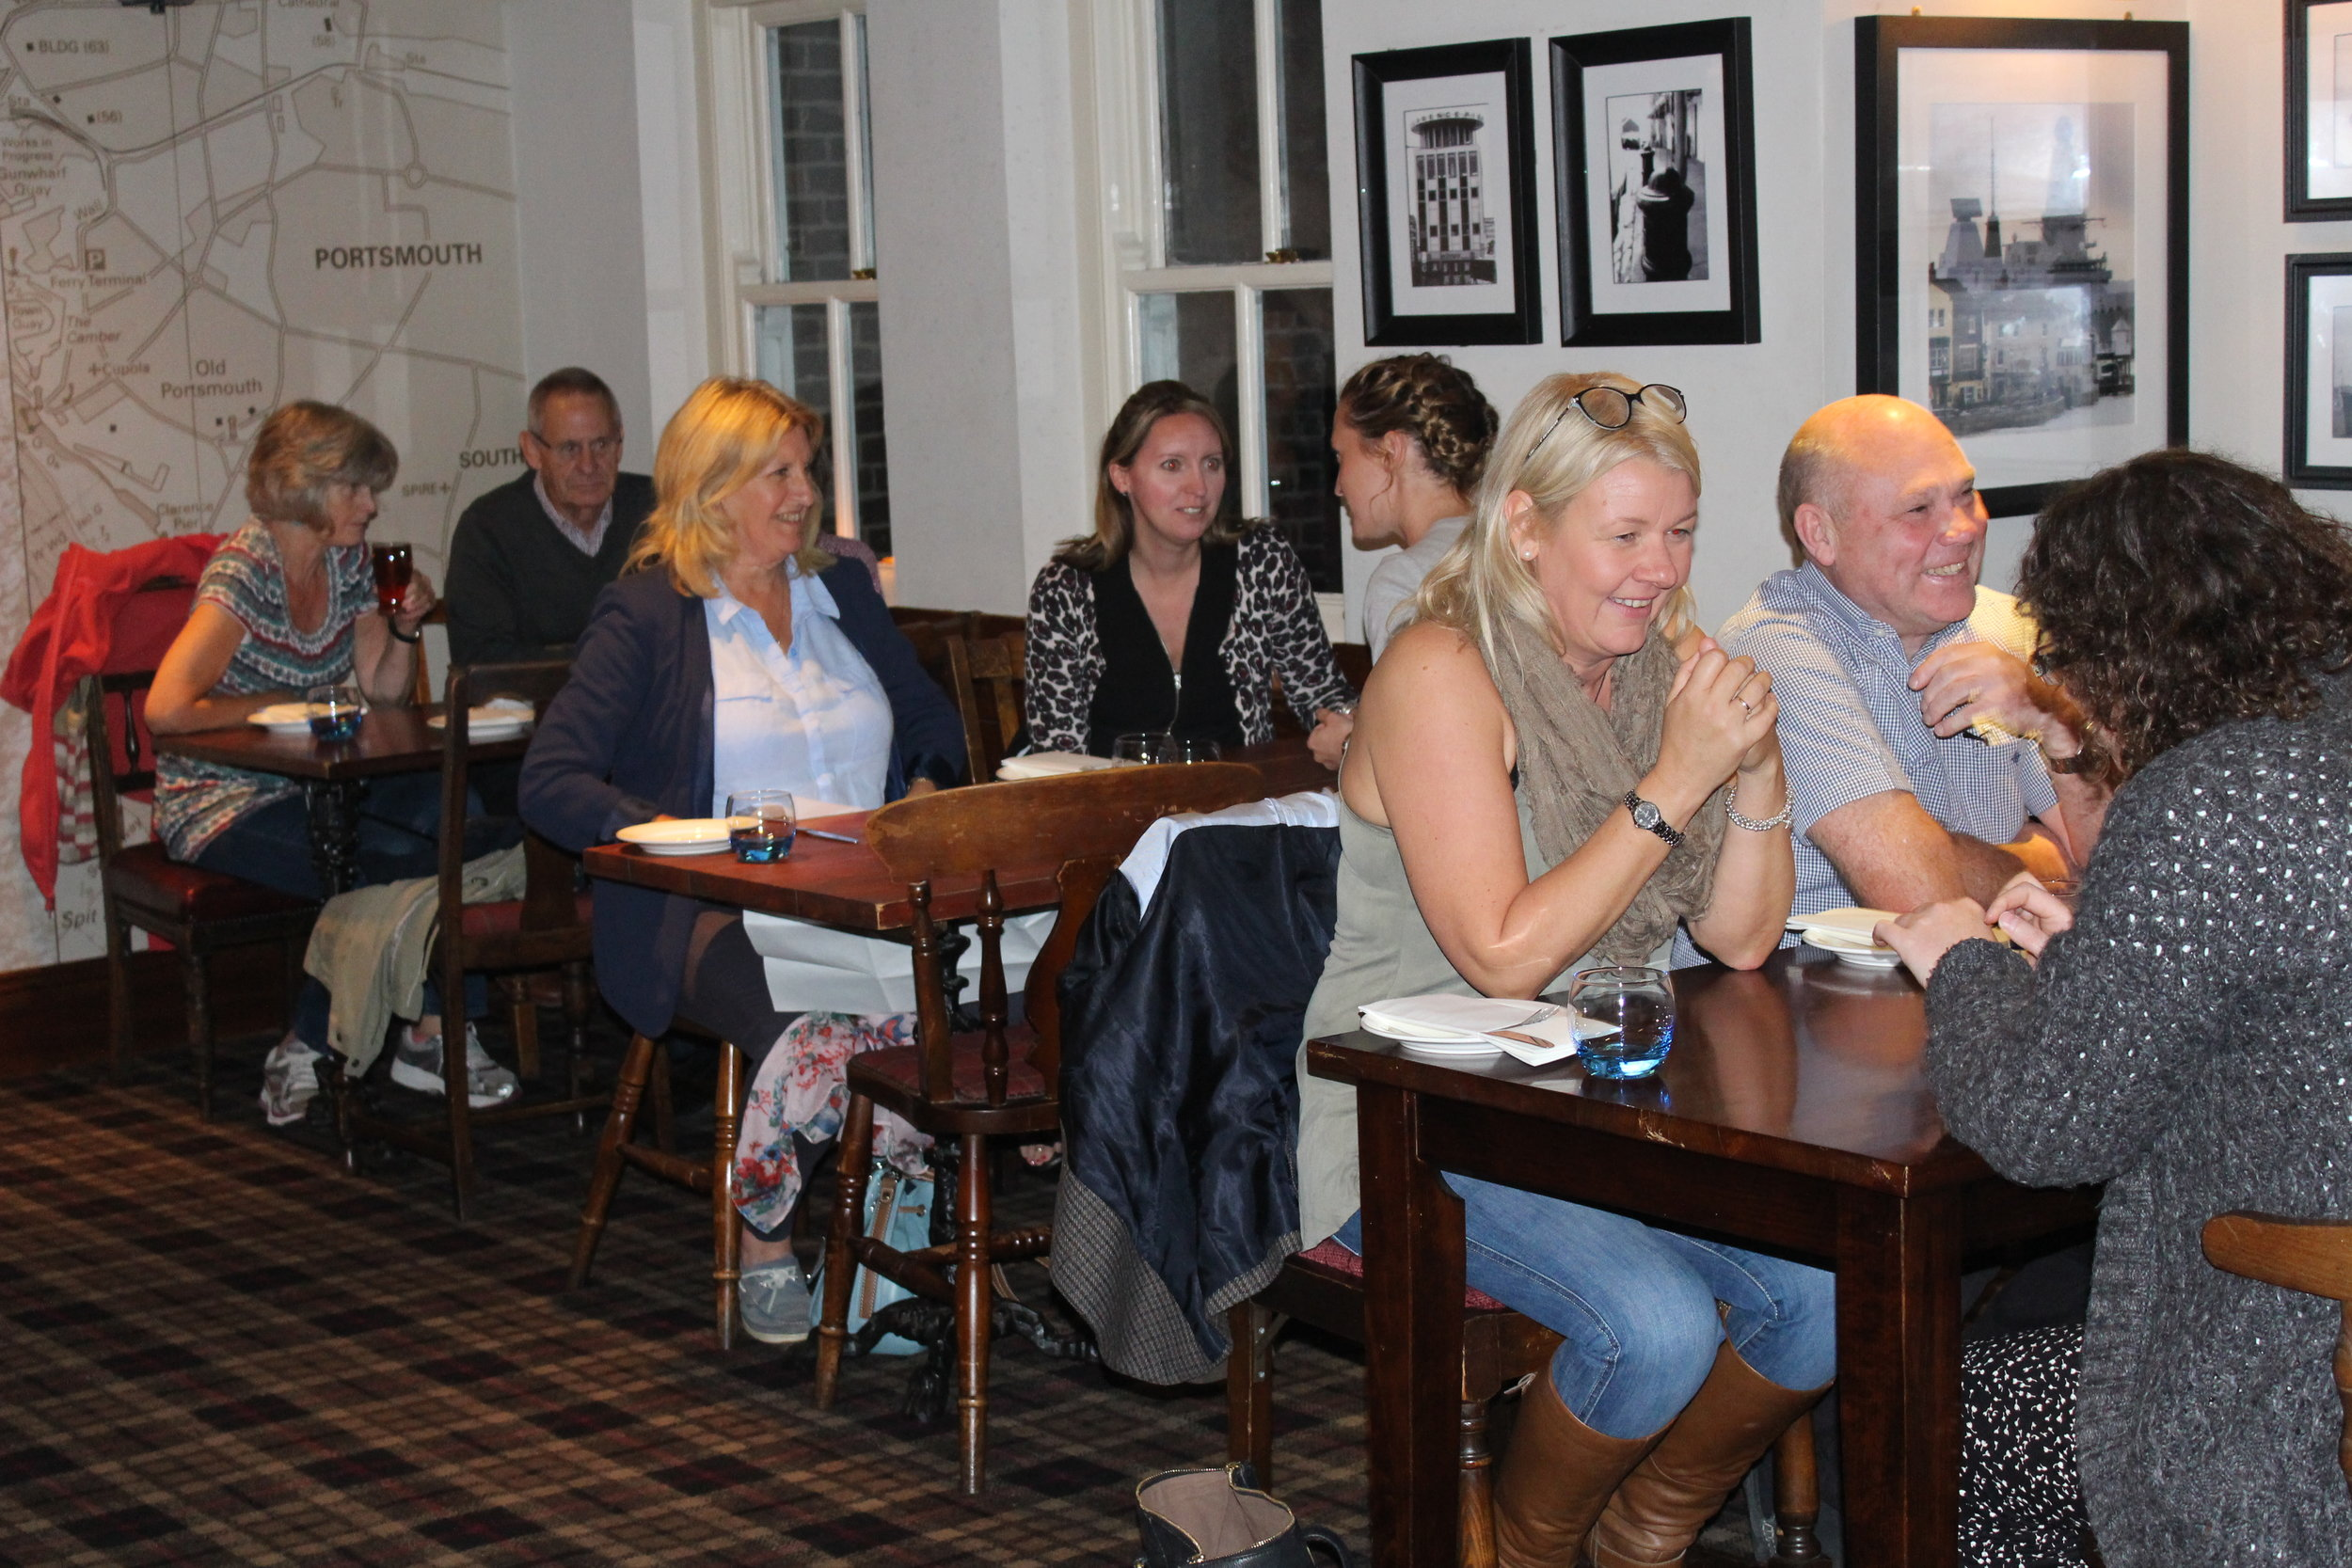 Alumni enjoying a fish and chip supper at the Still & West pub